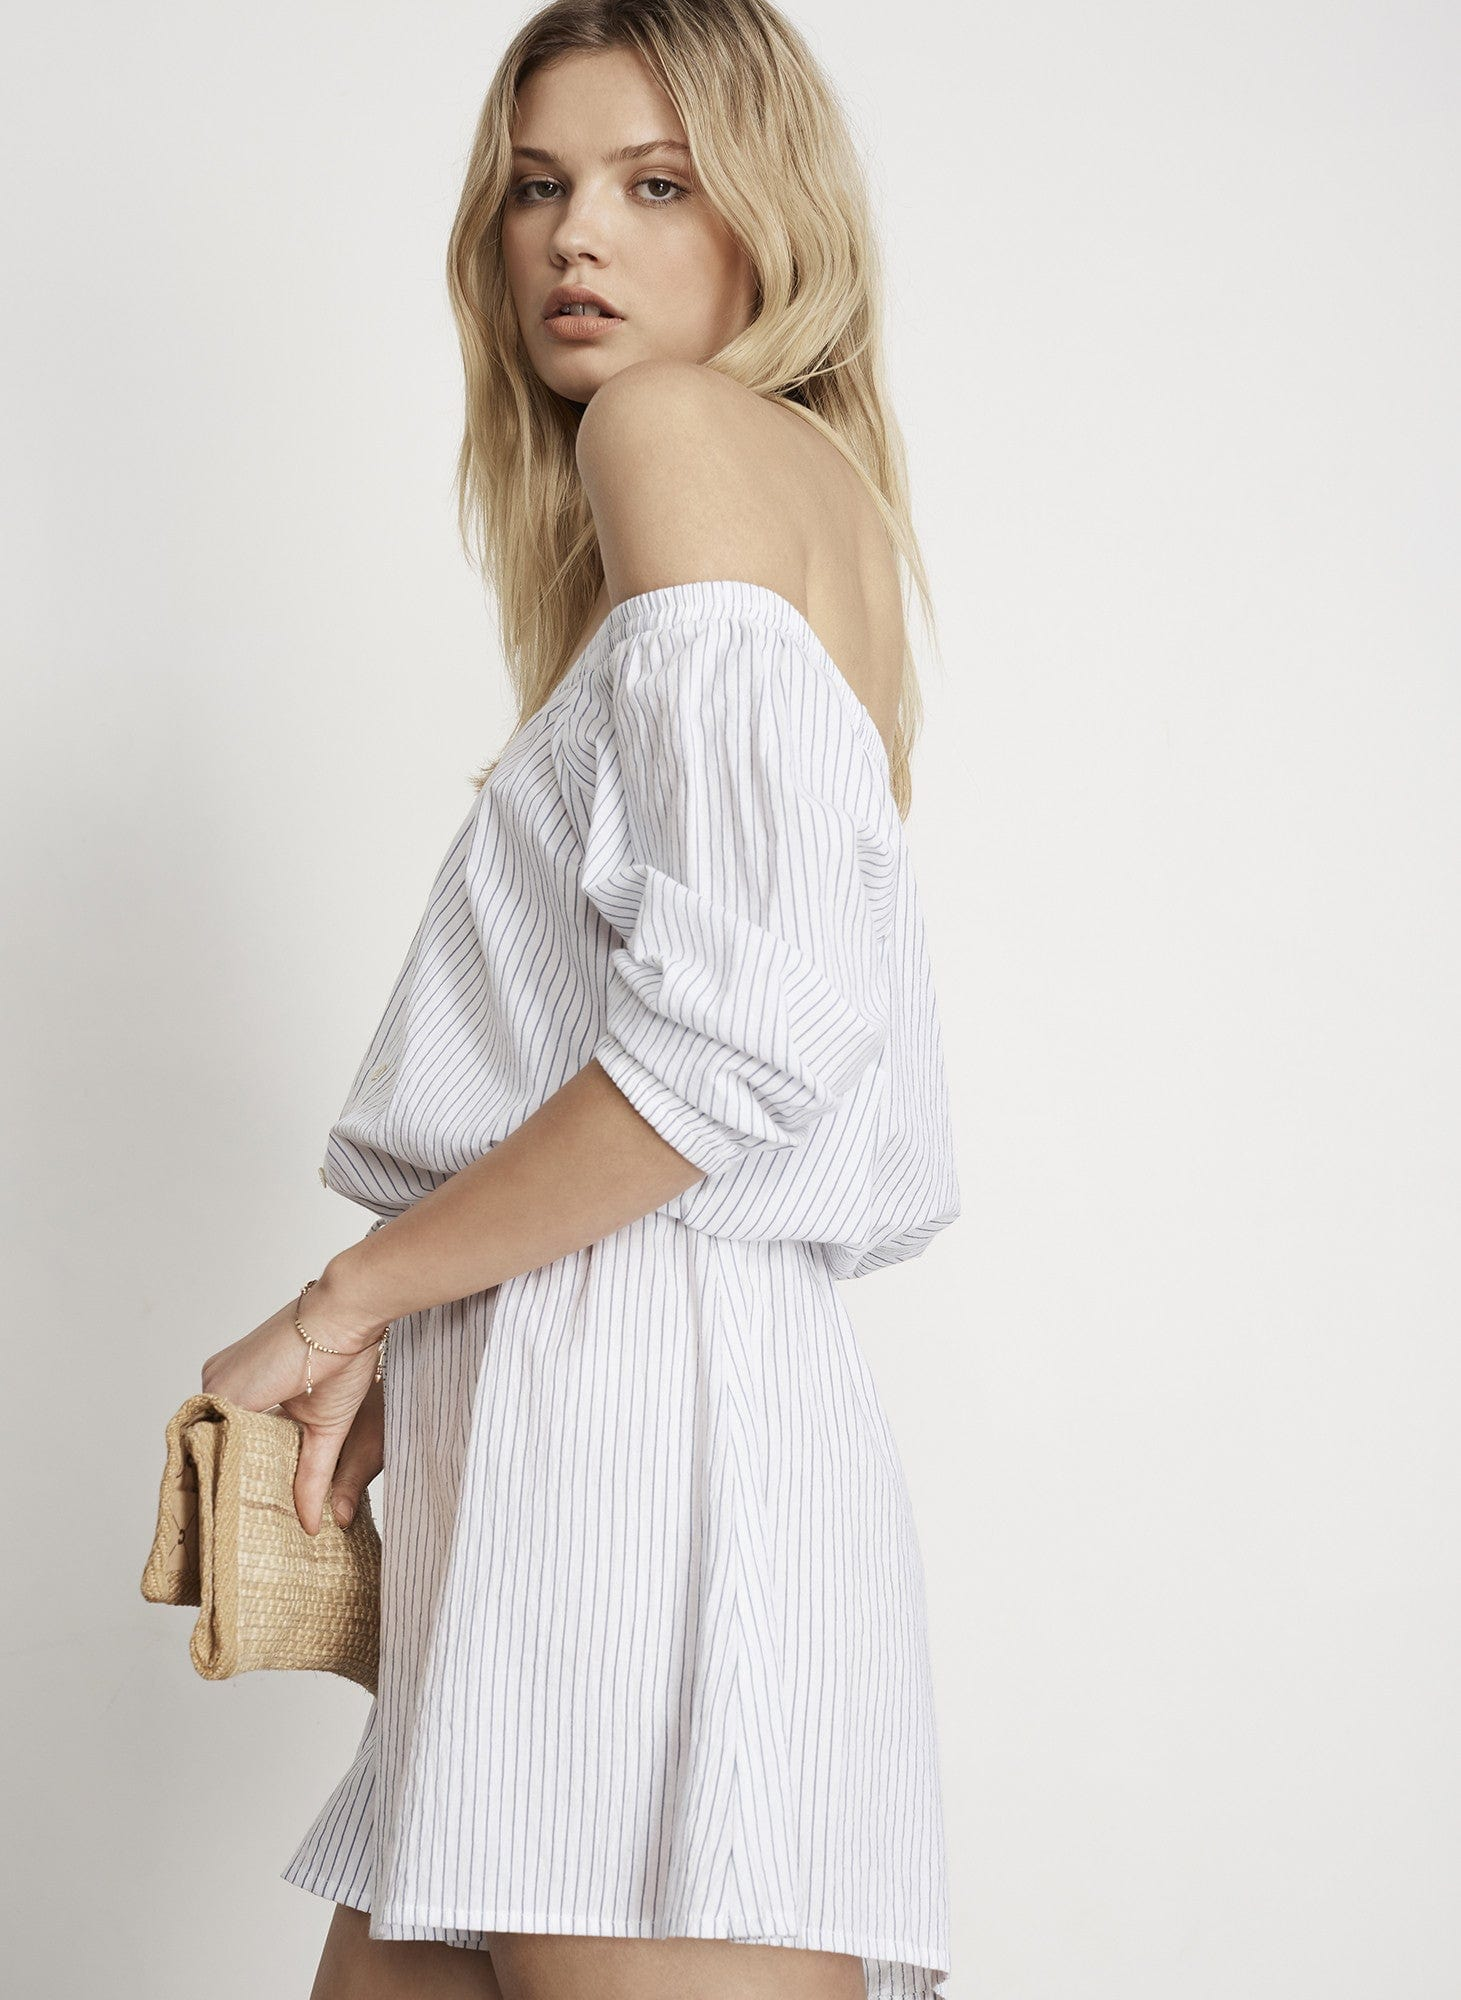 LEE STRIPE - SANDY PLAYSUIT - FINAL SALE